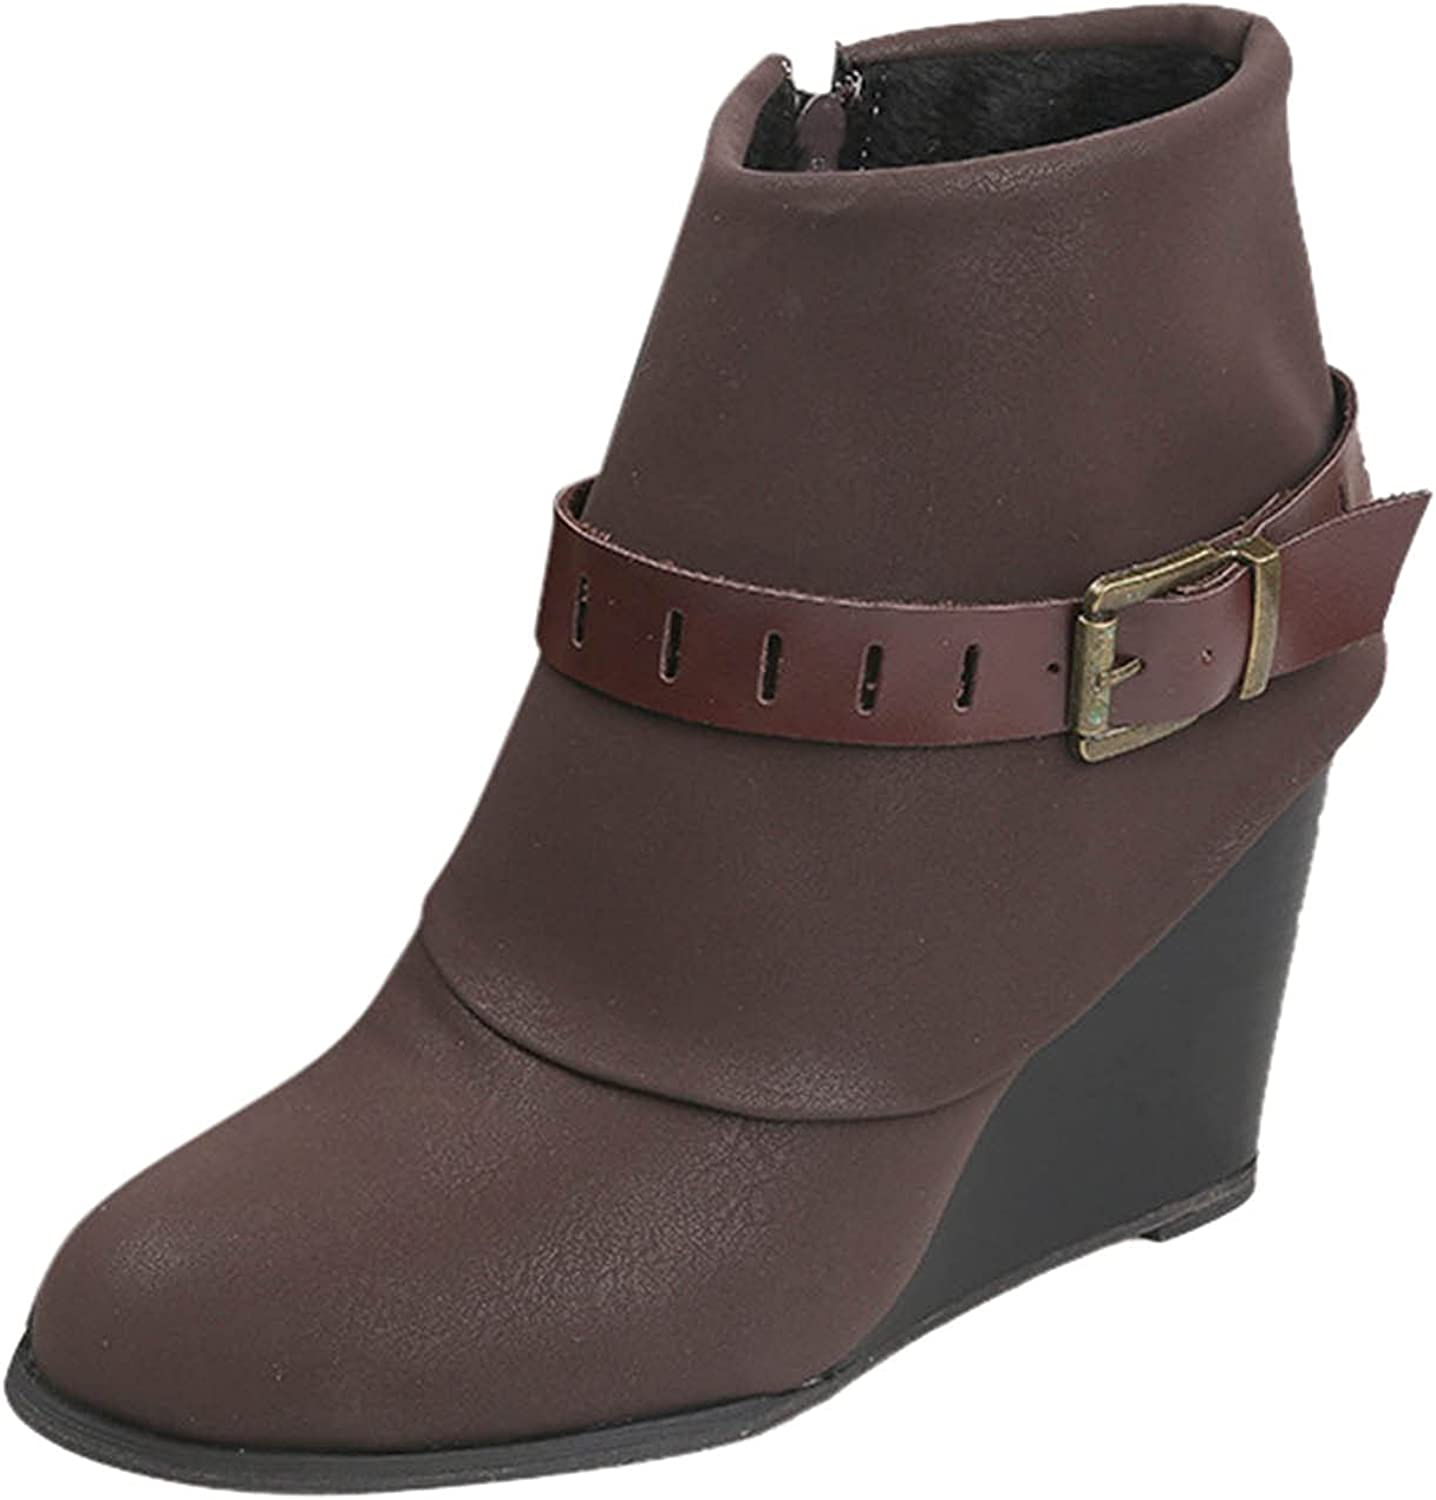 Boots for Women Square Heel Shoes Middle Tube Leather Slip-On Boots Round Toe Boots